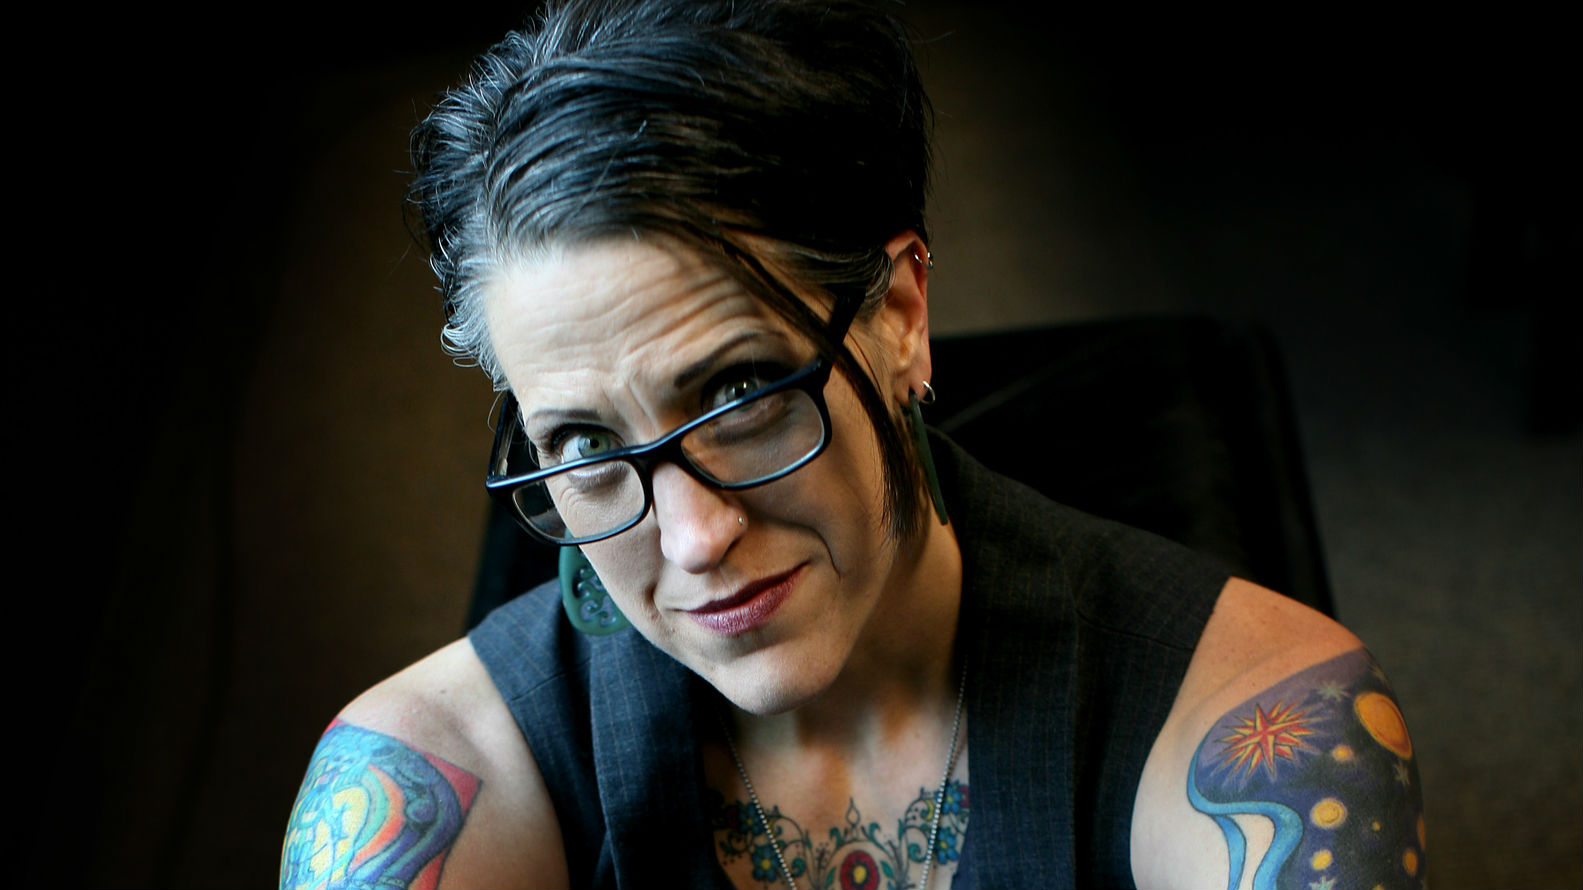 Photo: Denver Lutheran pastor Nadia Bolz-Weber_FEATURE